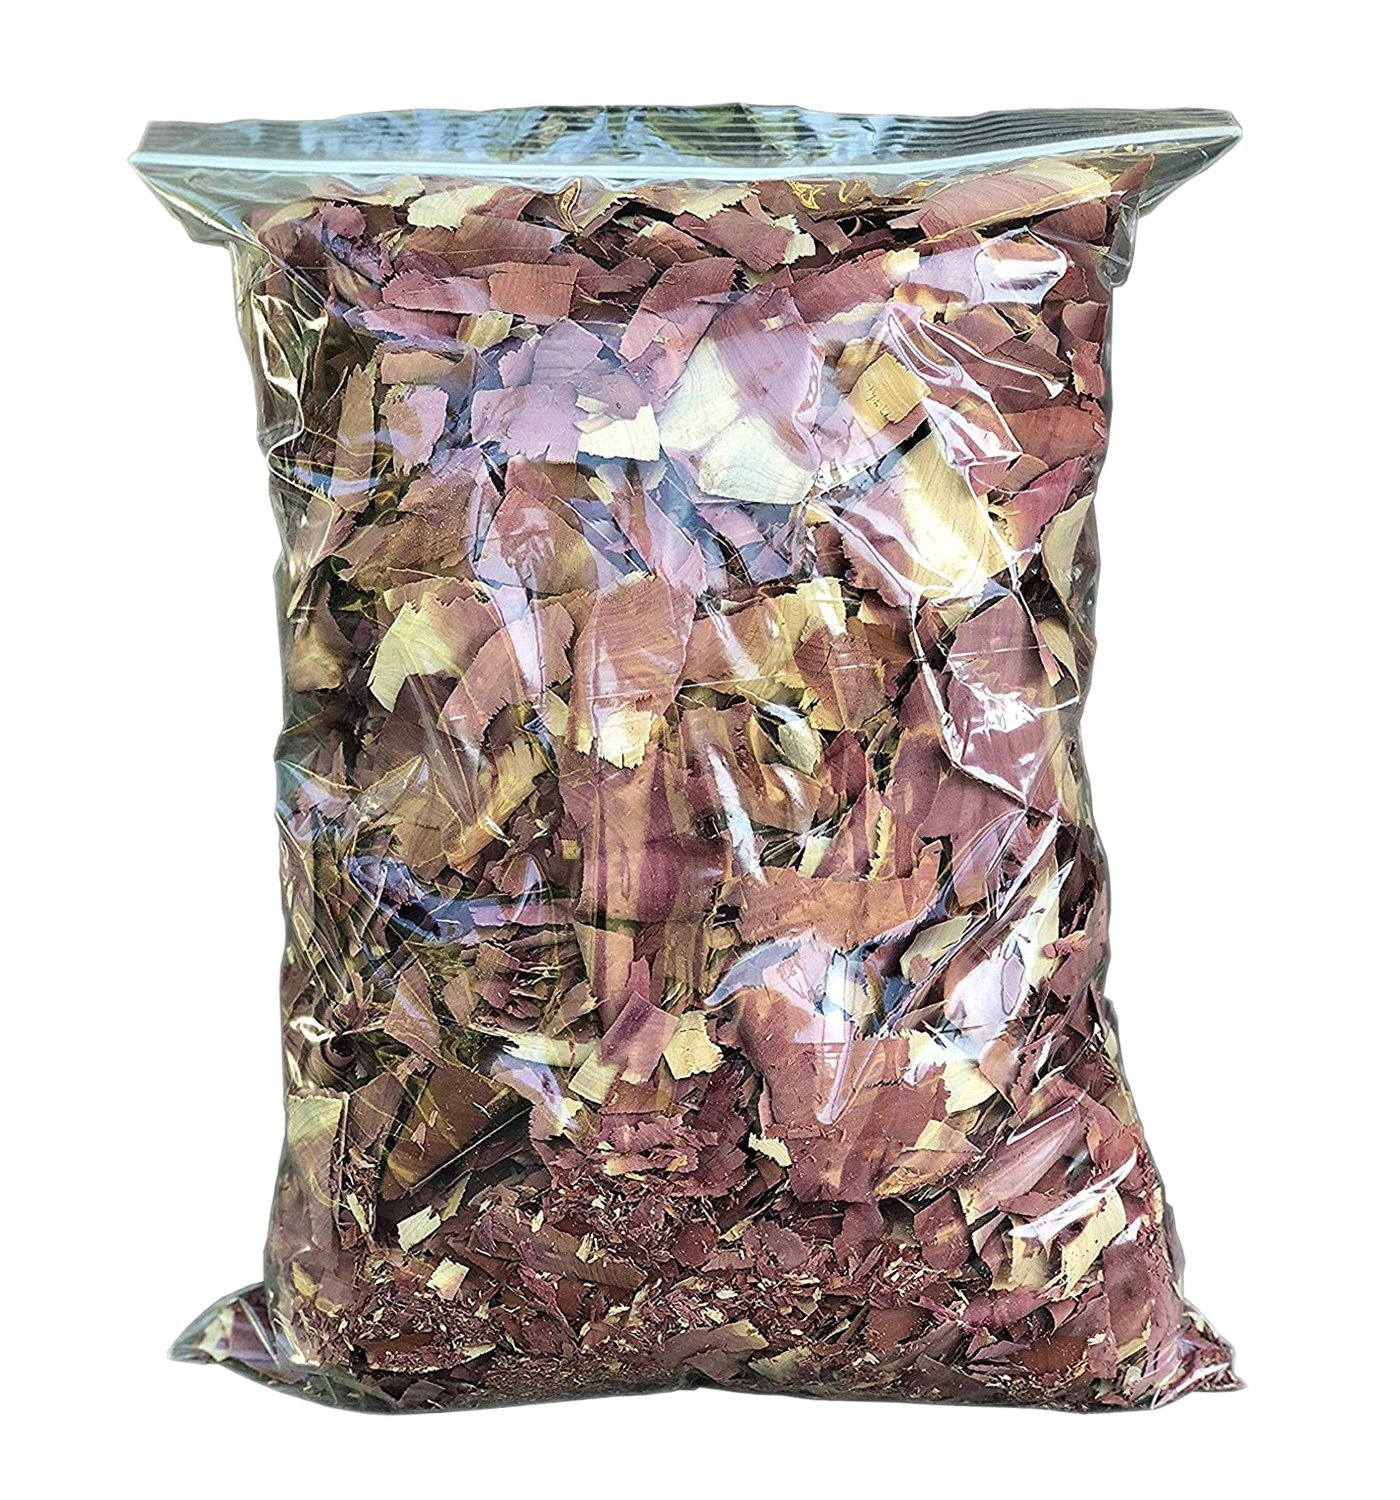 Vundahboah Amish Goods Cedar Wood Mulch Chips Shavings For Garden- Screech Owl House/Box- Organic Bedding